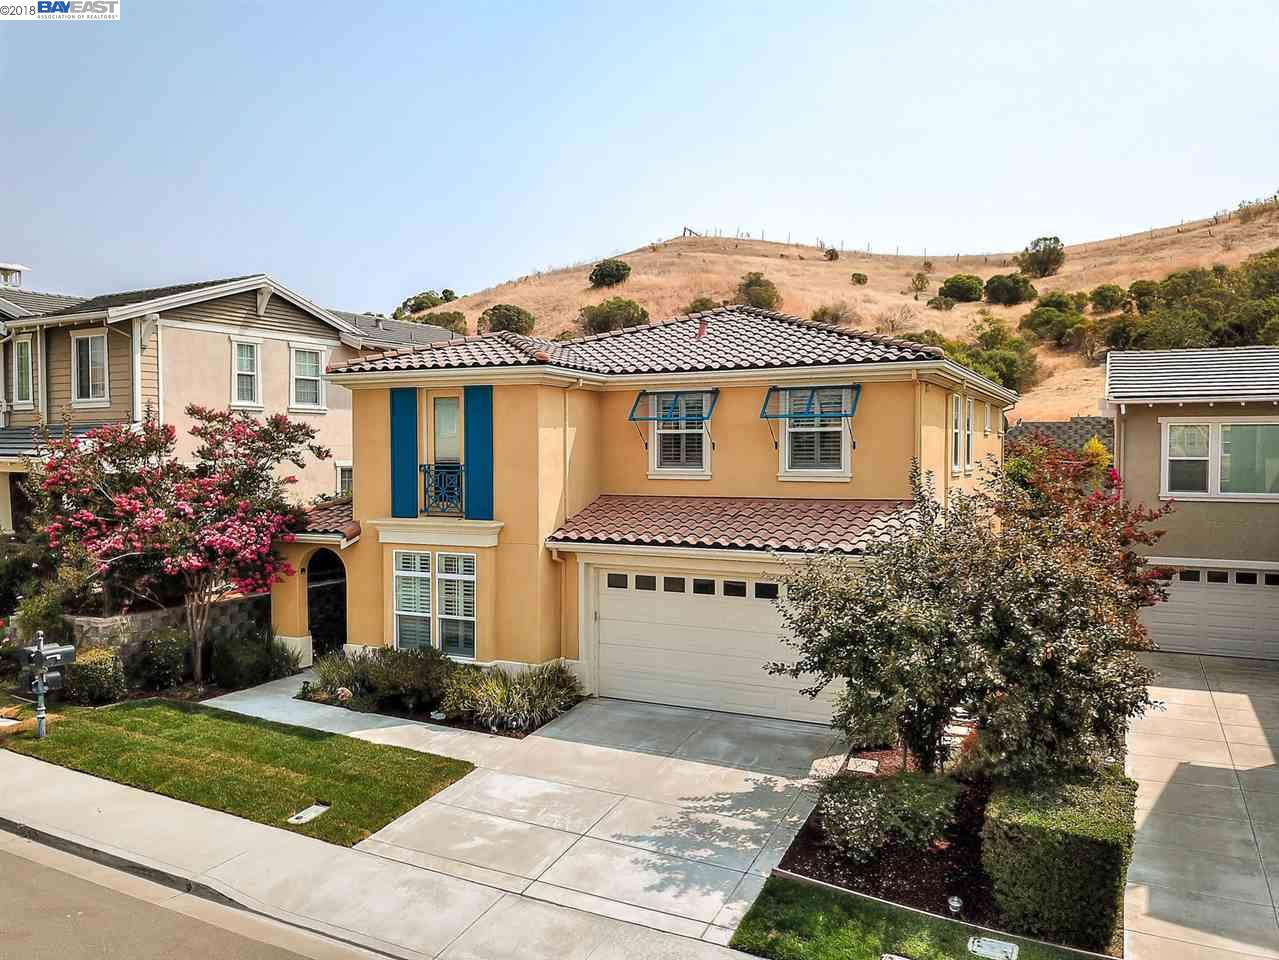 Main image for  alt='main image for 3888 Silvera Ranch Dr, Dublin CA 94568